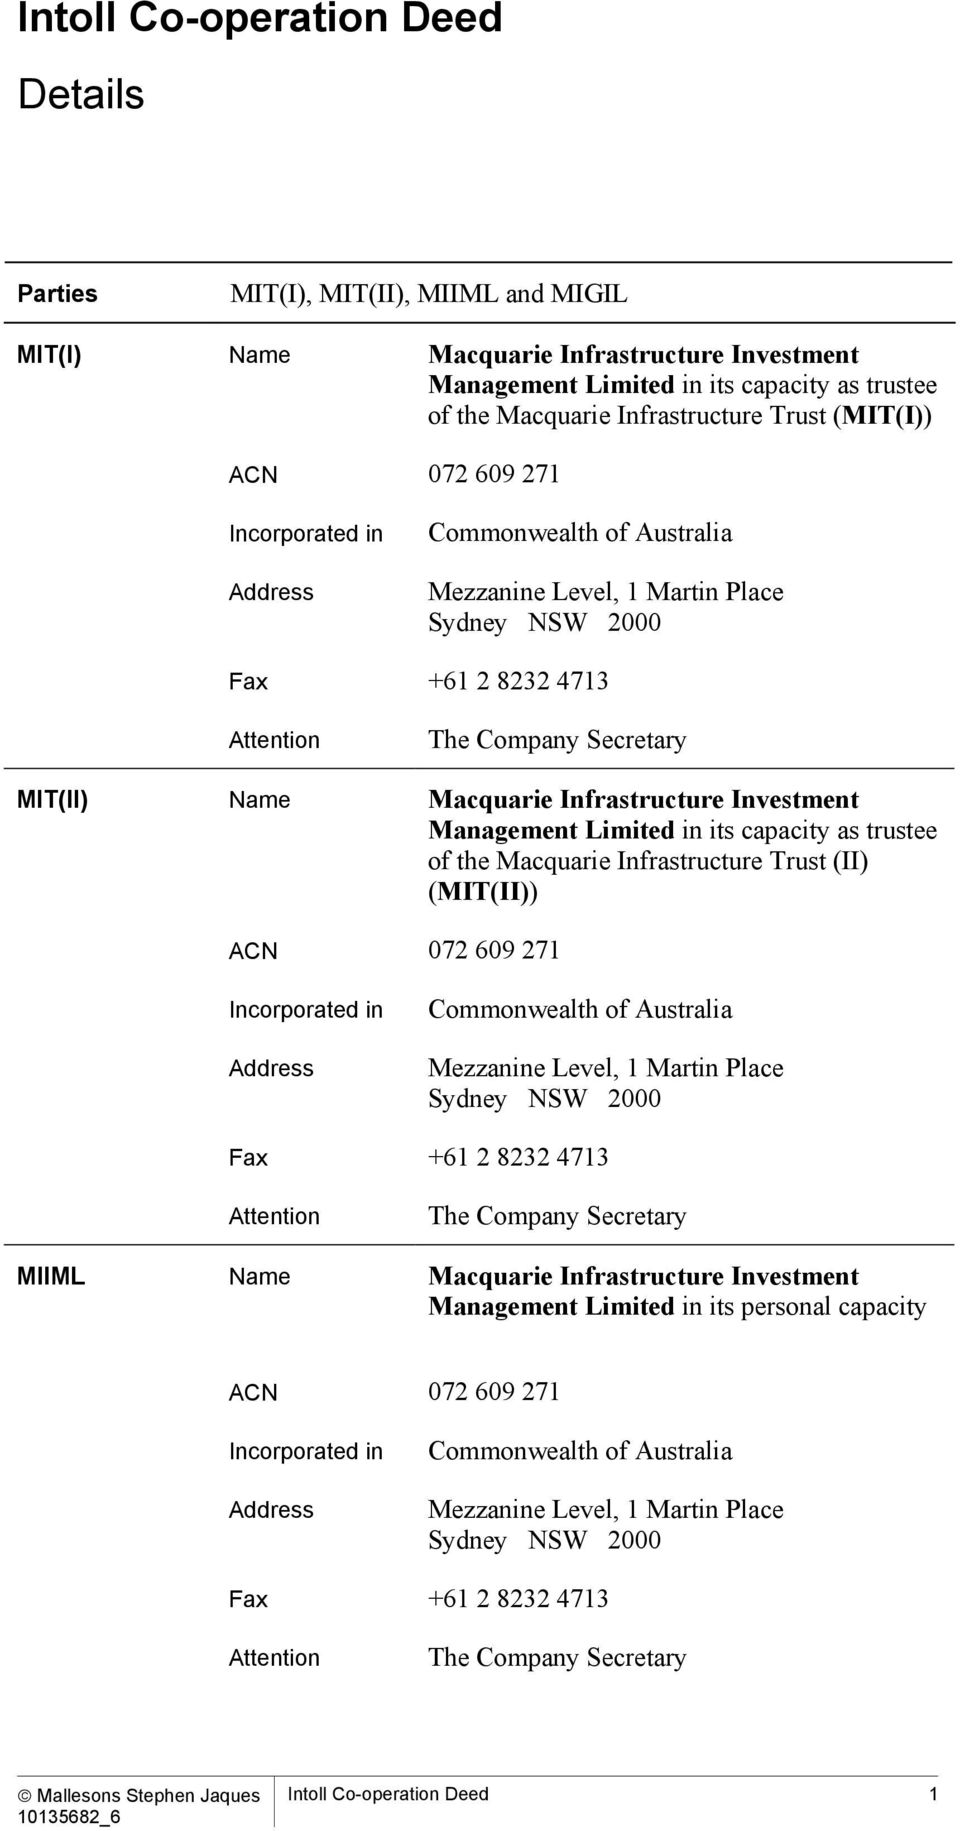 Macquarie Infrastructure Investment Management Limited in its capacity as trustee of the Macquarie Infrastructure Trust (II (MIT(II ACN 072 609 271 Incorporated in Address Commonwealth of Australia